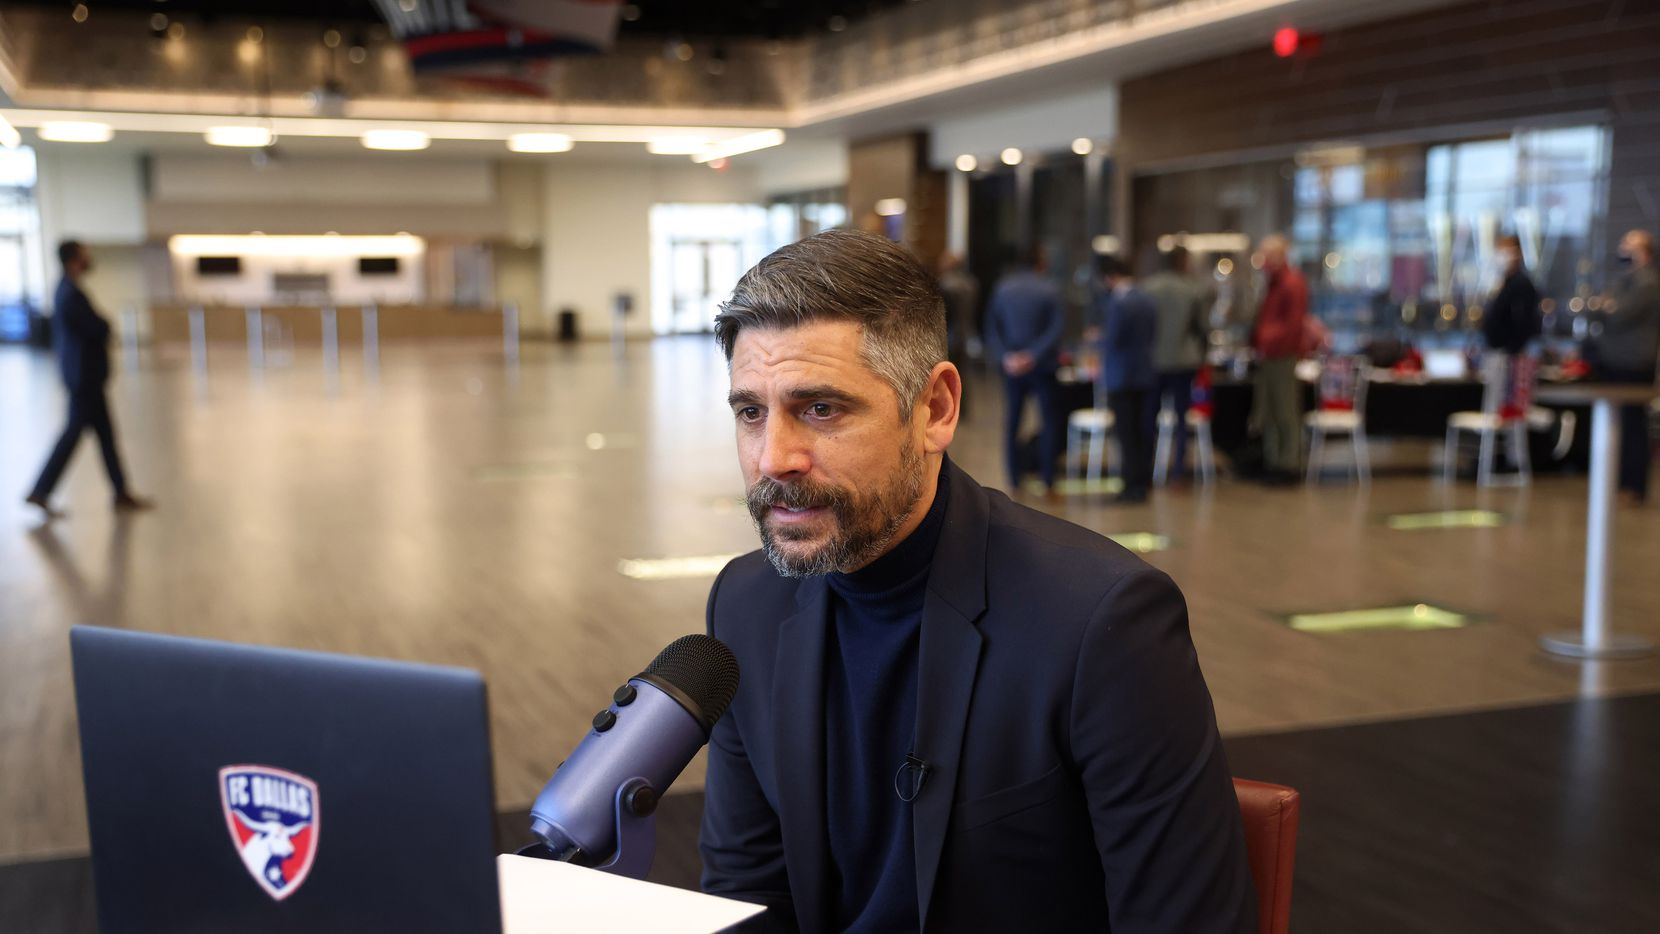 FC Dallas head coach Luchi Gonzalez announces selecting Nicky Hernandez virtually for the 15th pick of round 1in the MLS SuperDraft at Toyota Stadium on Thursday, January 21, 2021in Frisco, Texas.